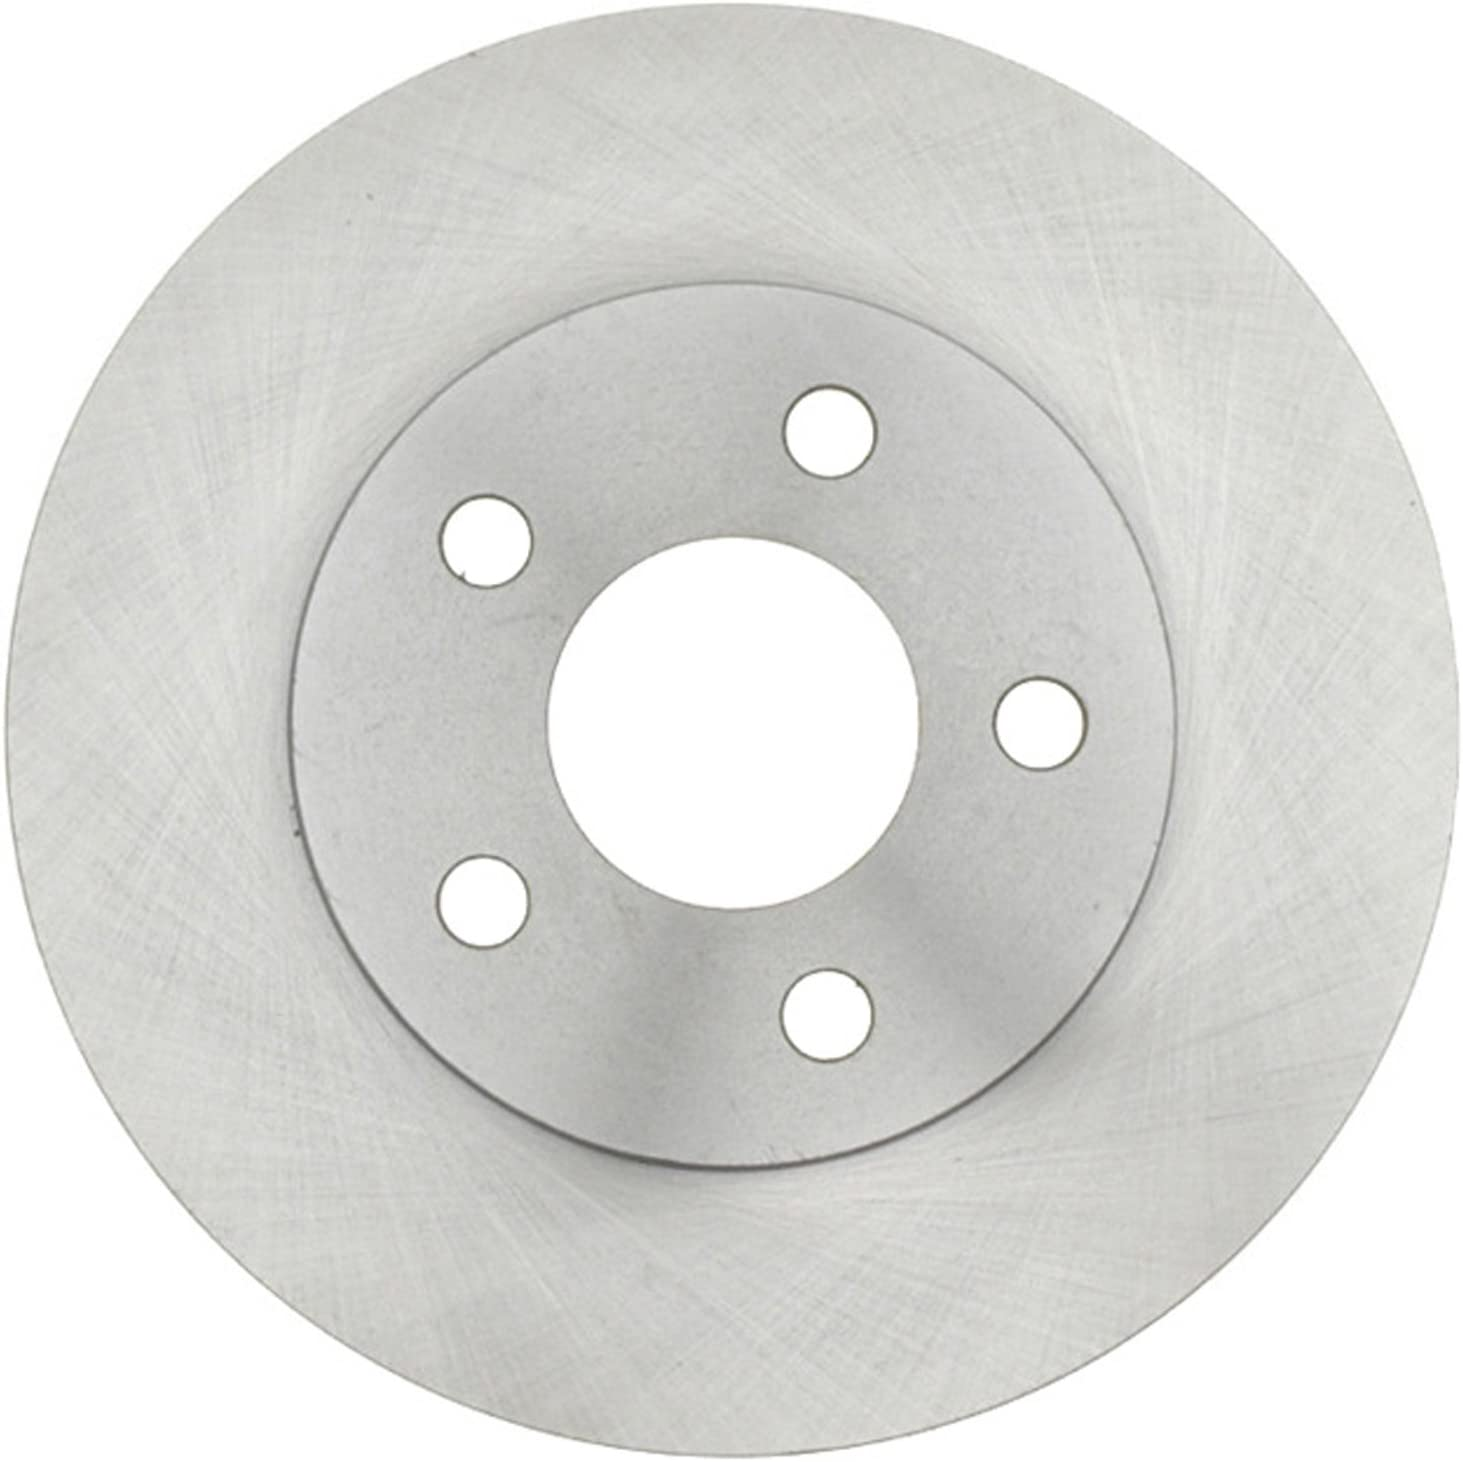 Rr Disc Brake Rotor  ACDelco Advantage  18A624A